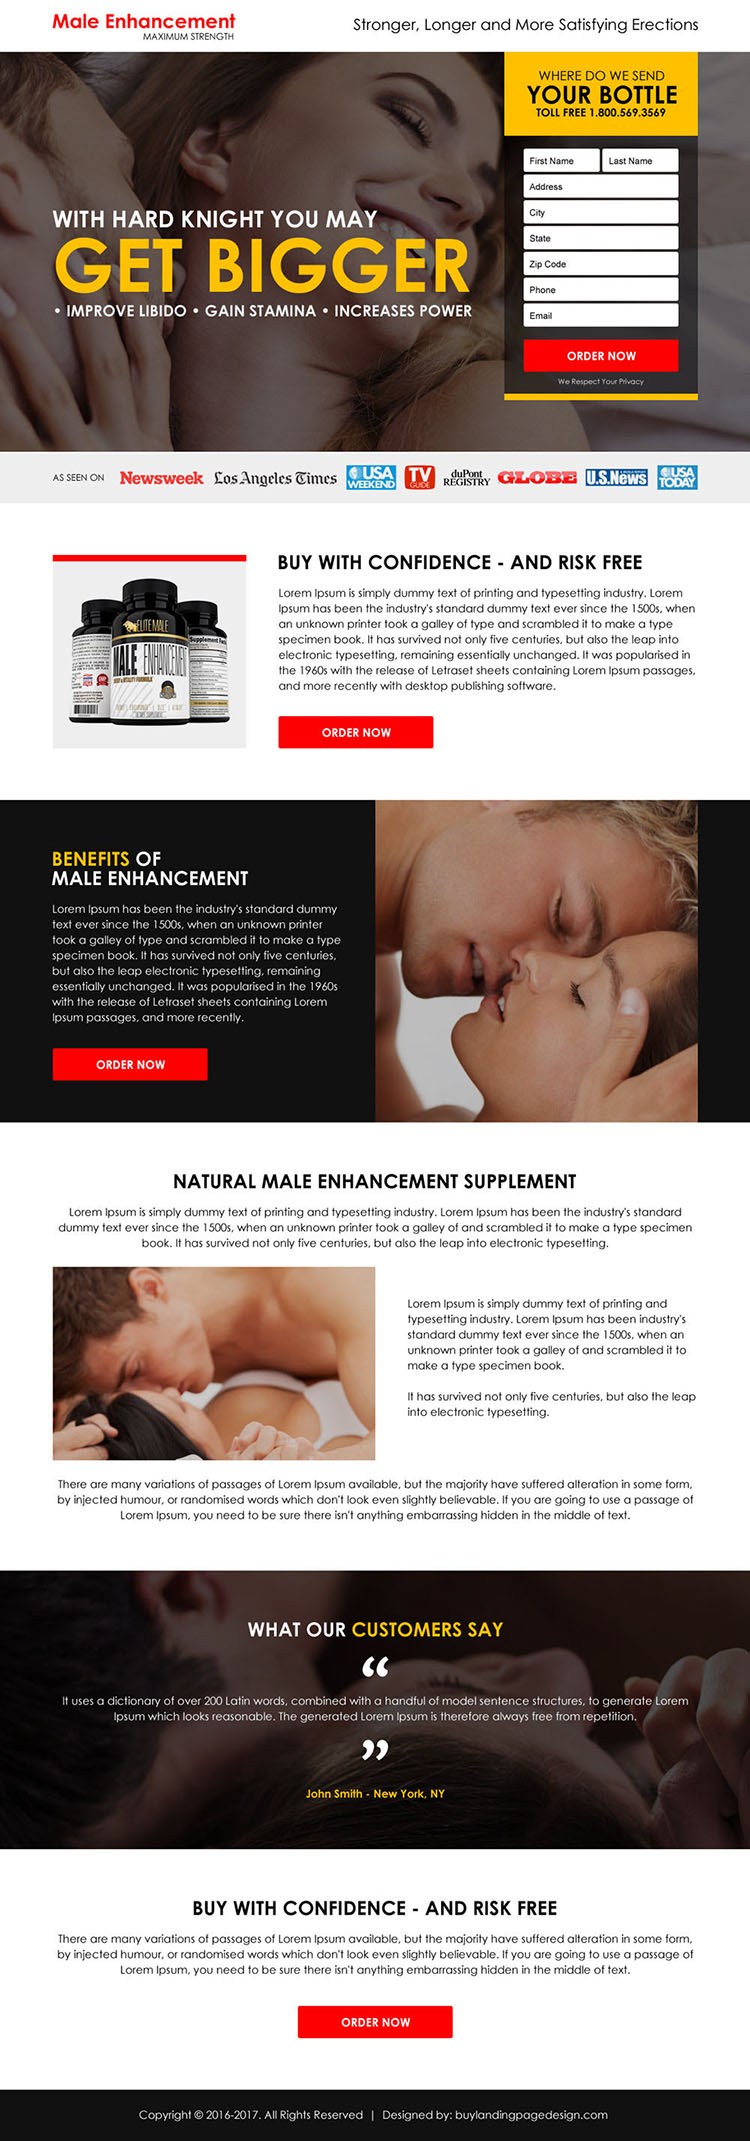 best male enhancement product lead capture landing page